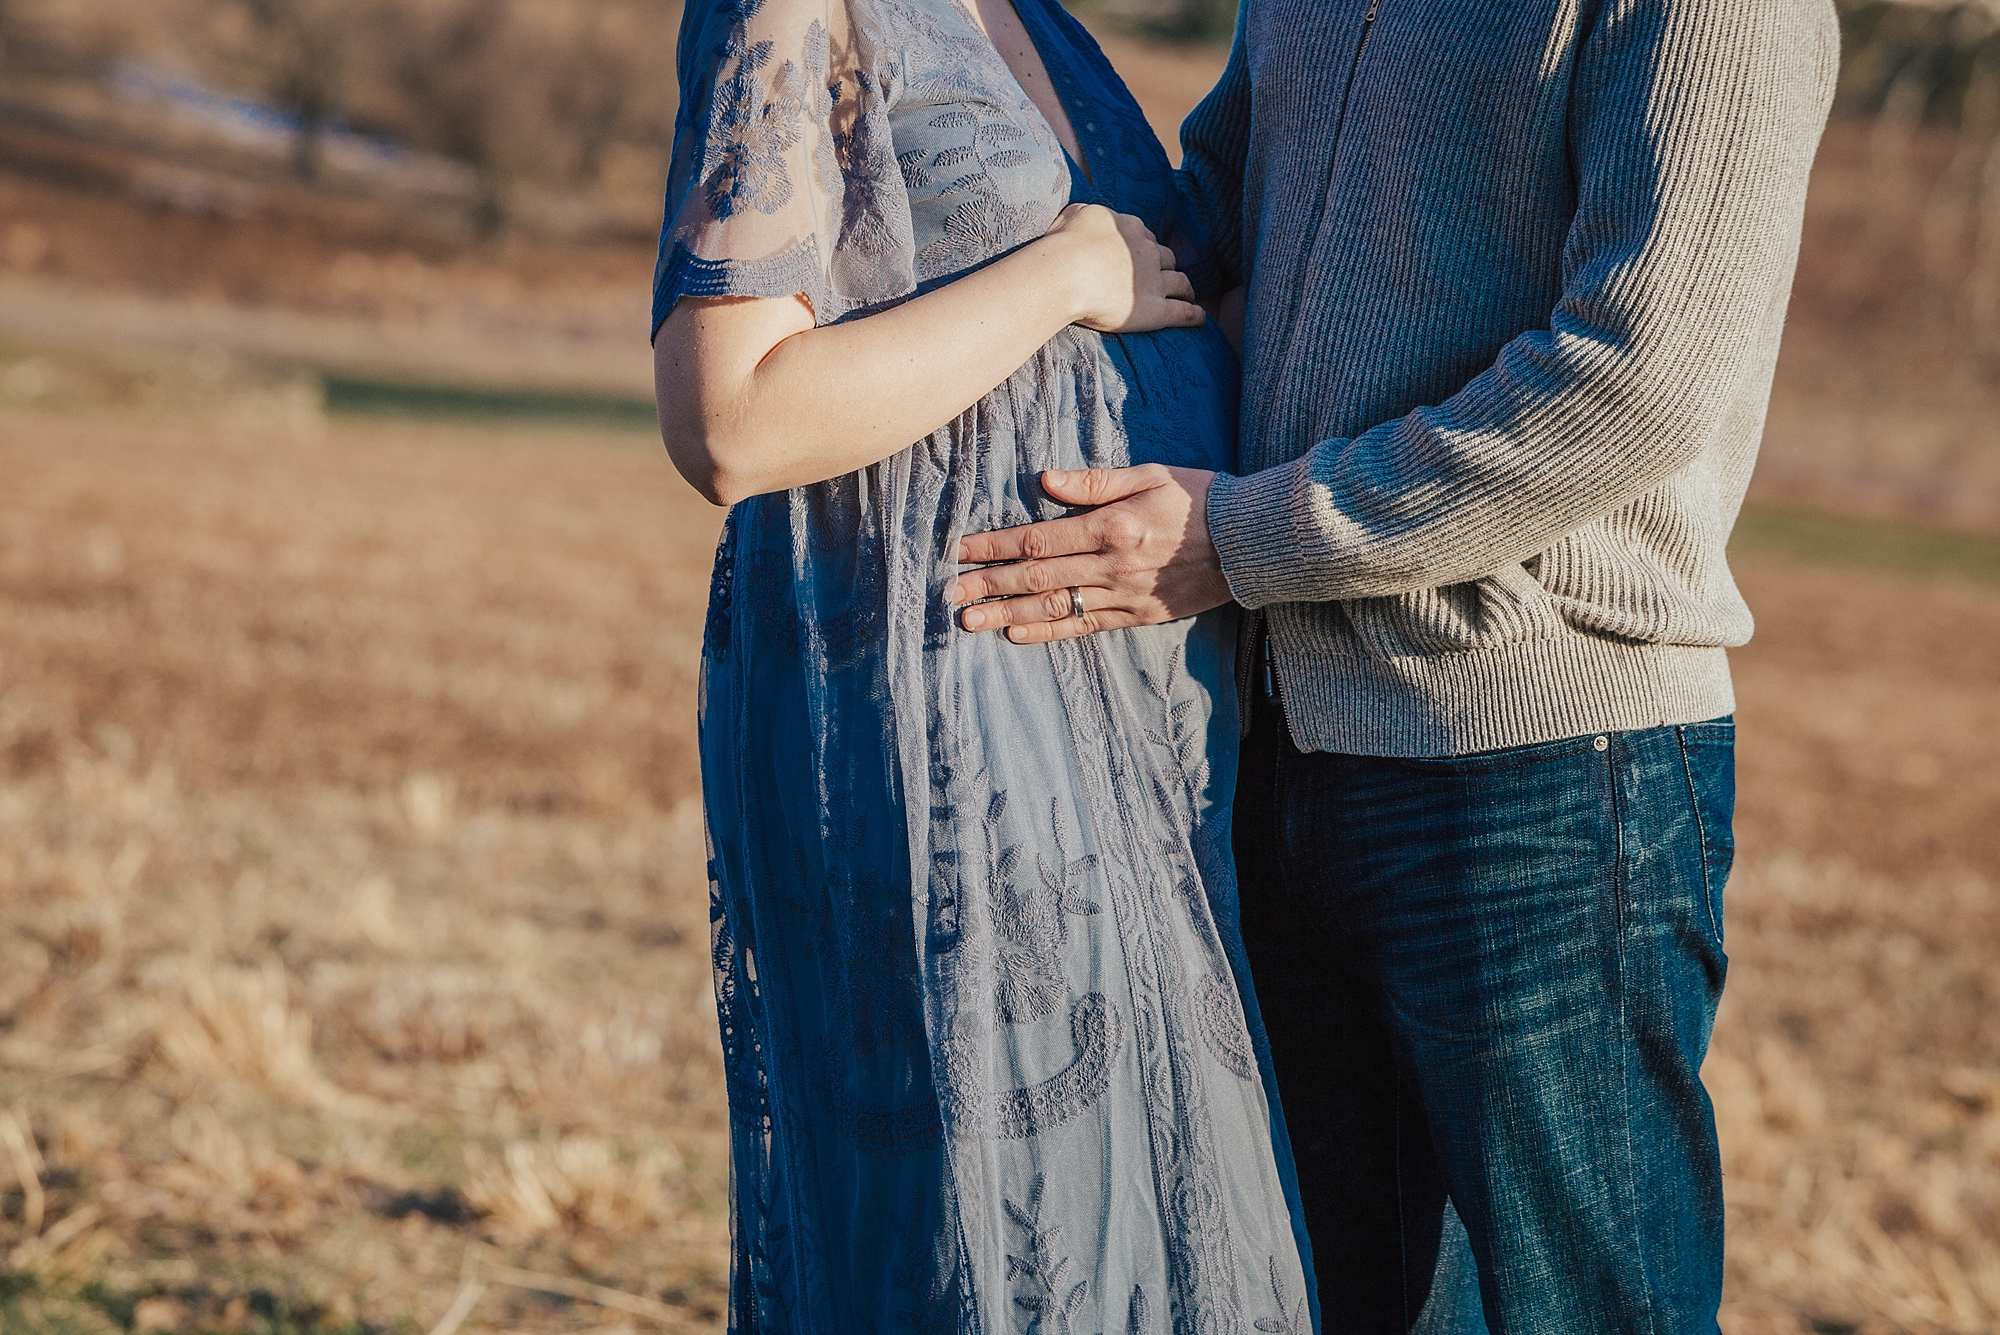 Joe_Mac_Creative_Maternity_Wedding_Engagements_Photography_Philadelphia_Valley_Forge__0049.jpg